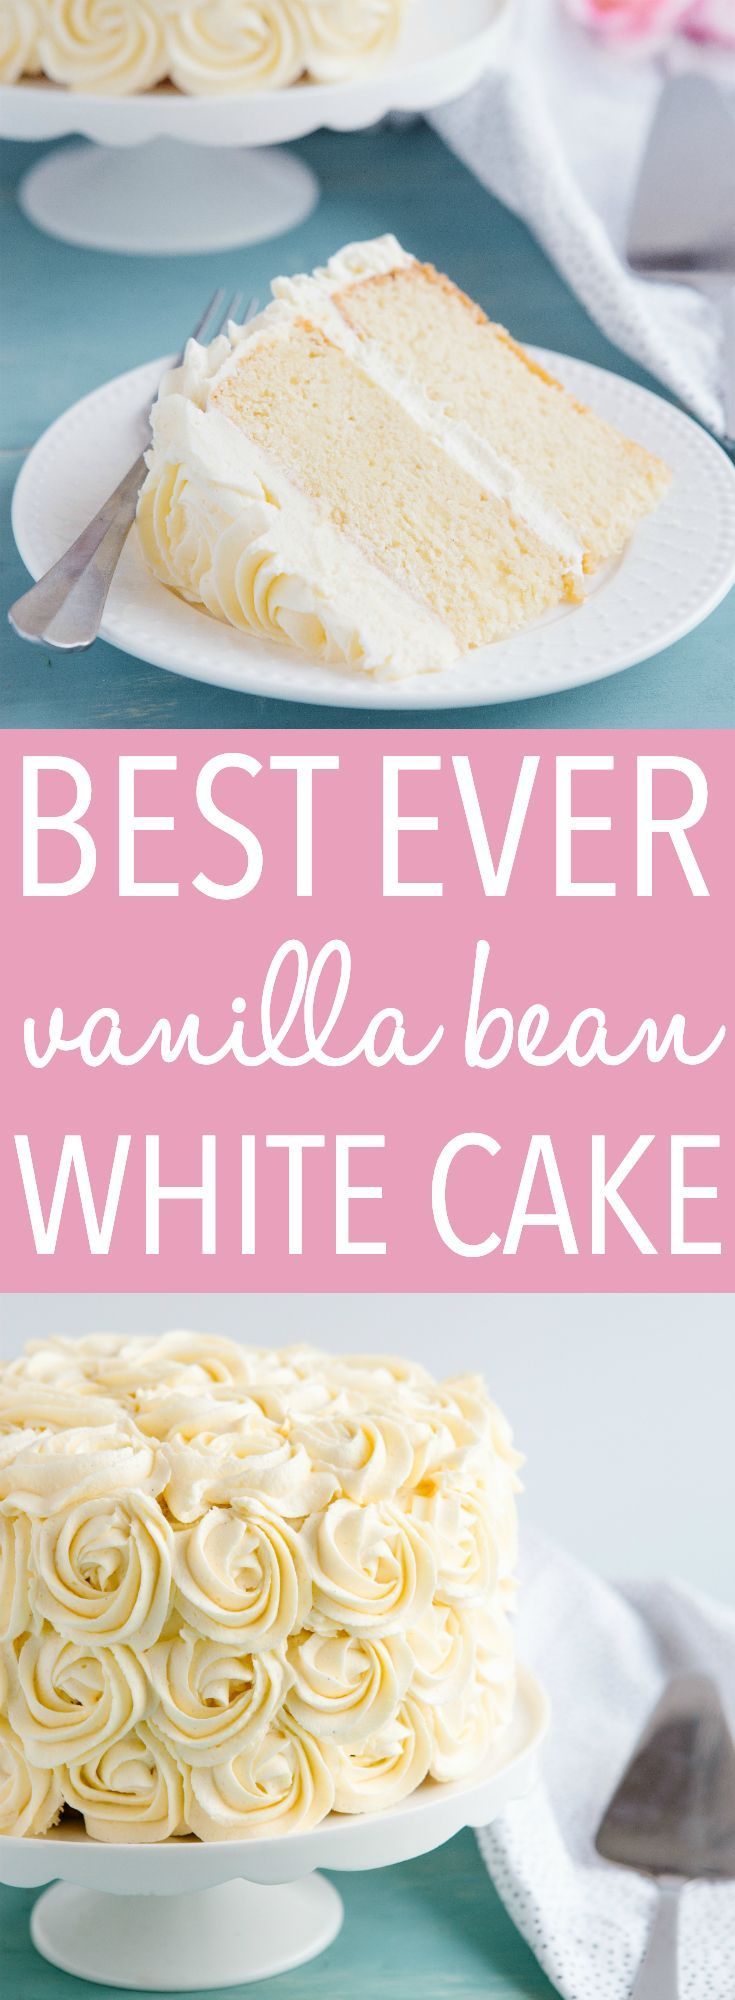 Best Ever Vanilla Bean White Cake {Geburtstagstorte   – Amazing Desserts and Sweets